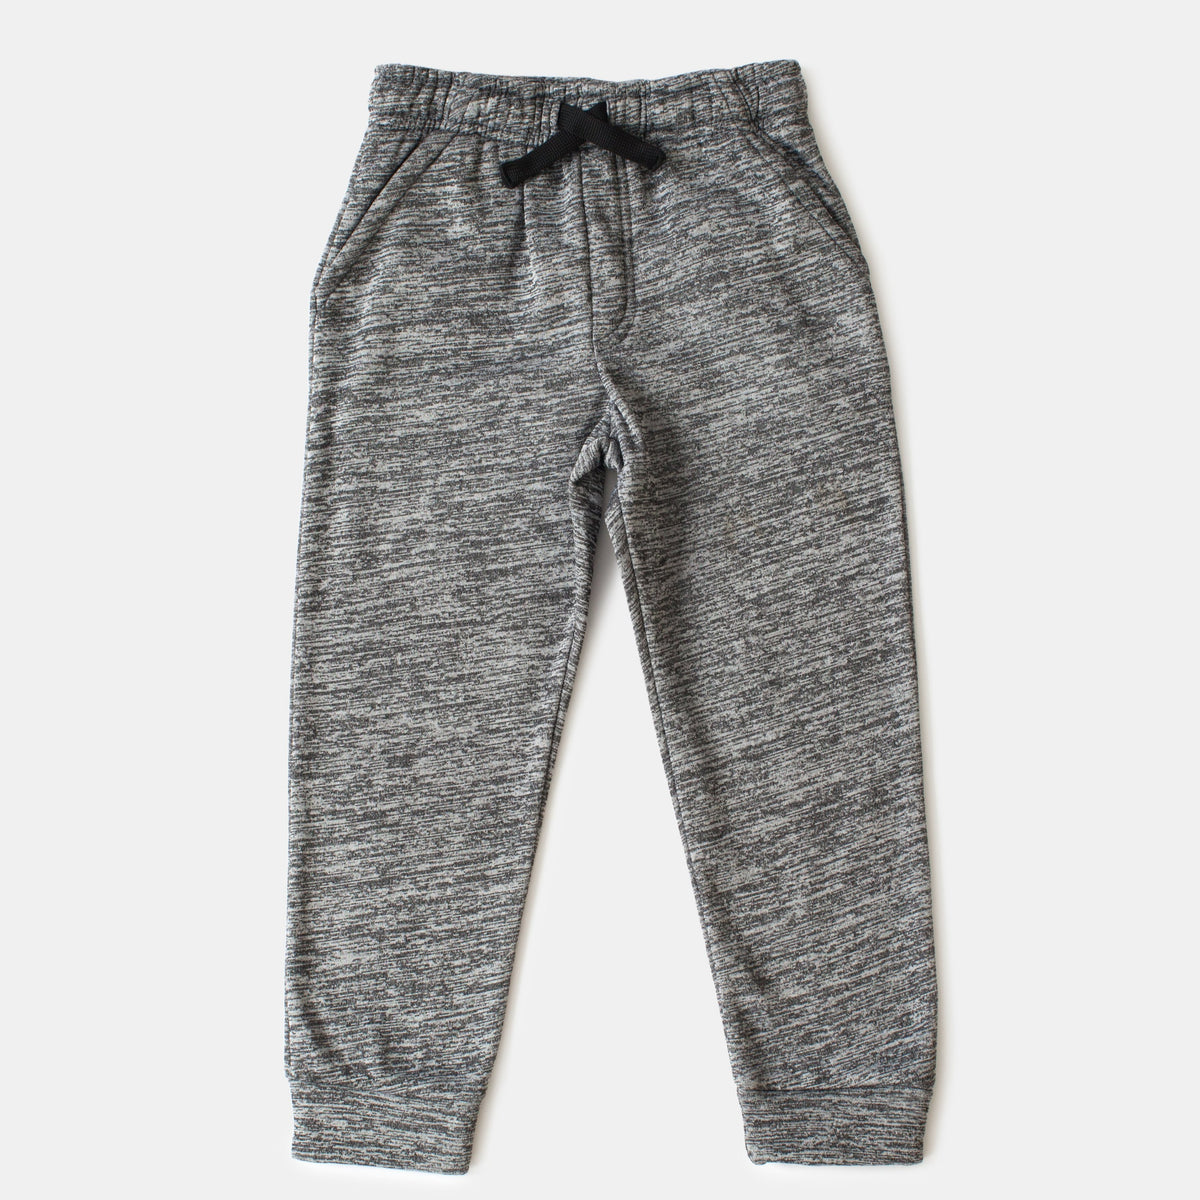 Gray Fleece Joggers With Pockets